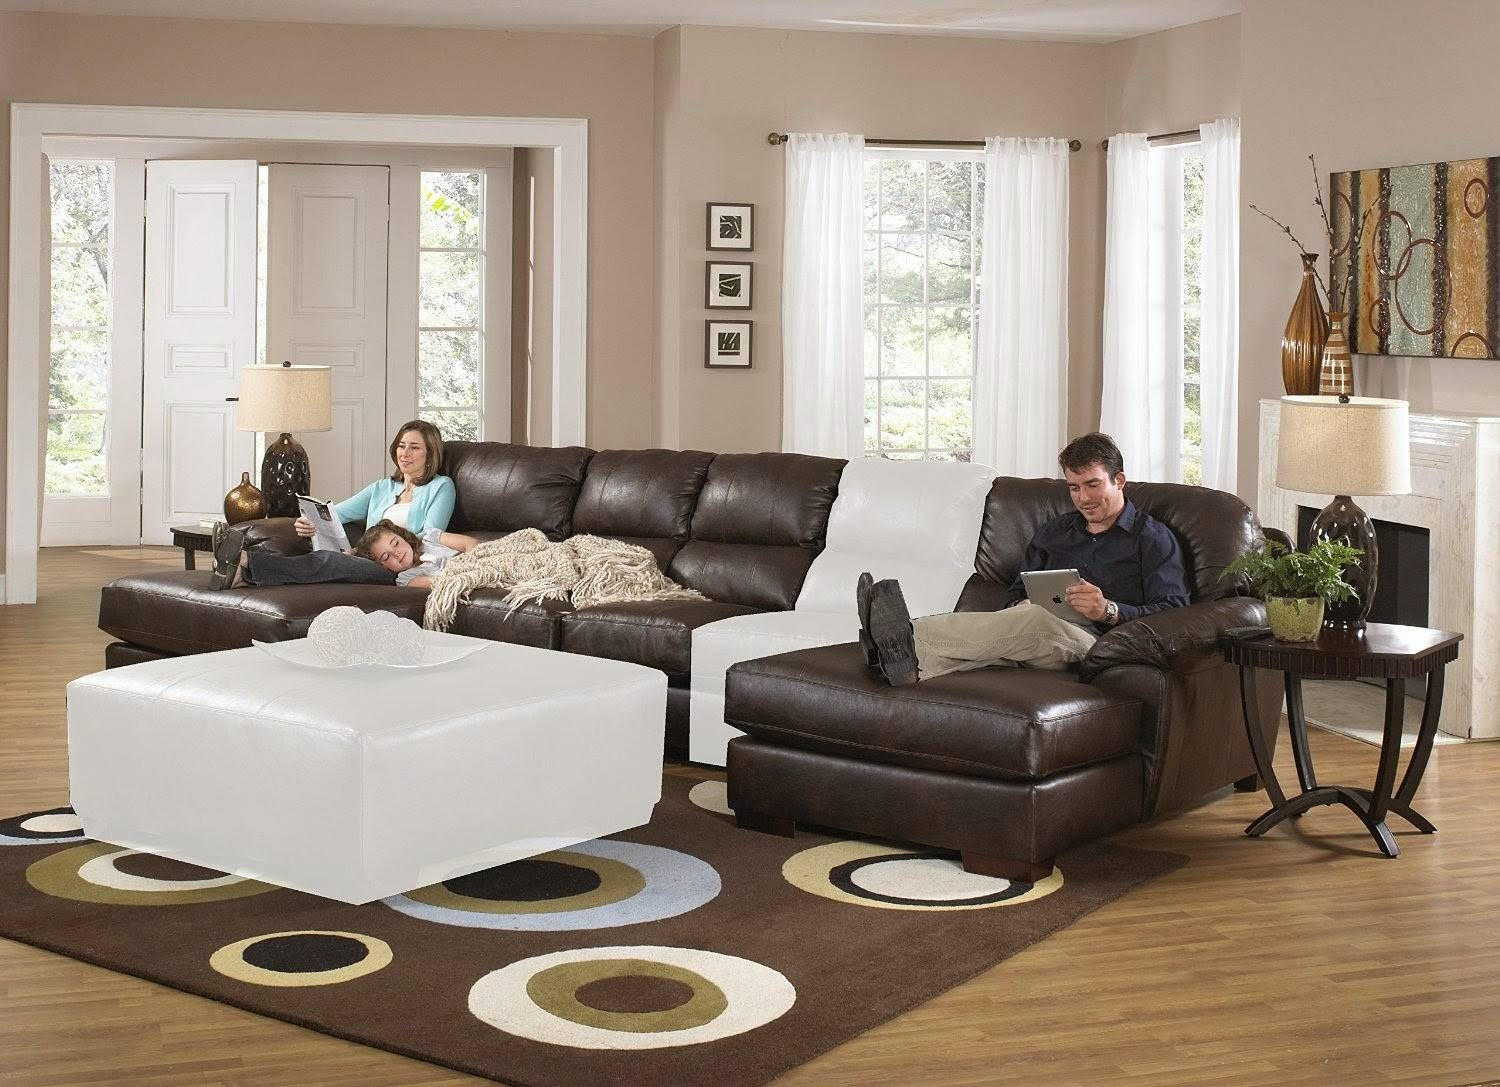 Furniture: Sectional Couches With Recliners | U Shaped Sectional intended for U Shaped Leather Sectional Sofa (Image 11 of 25)